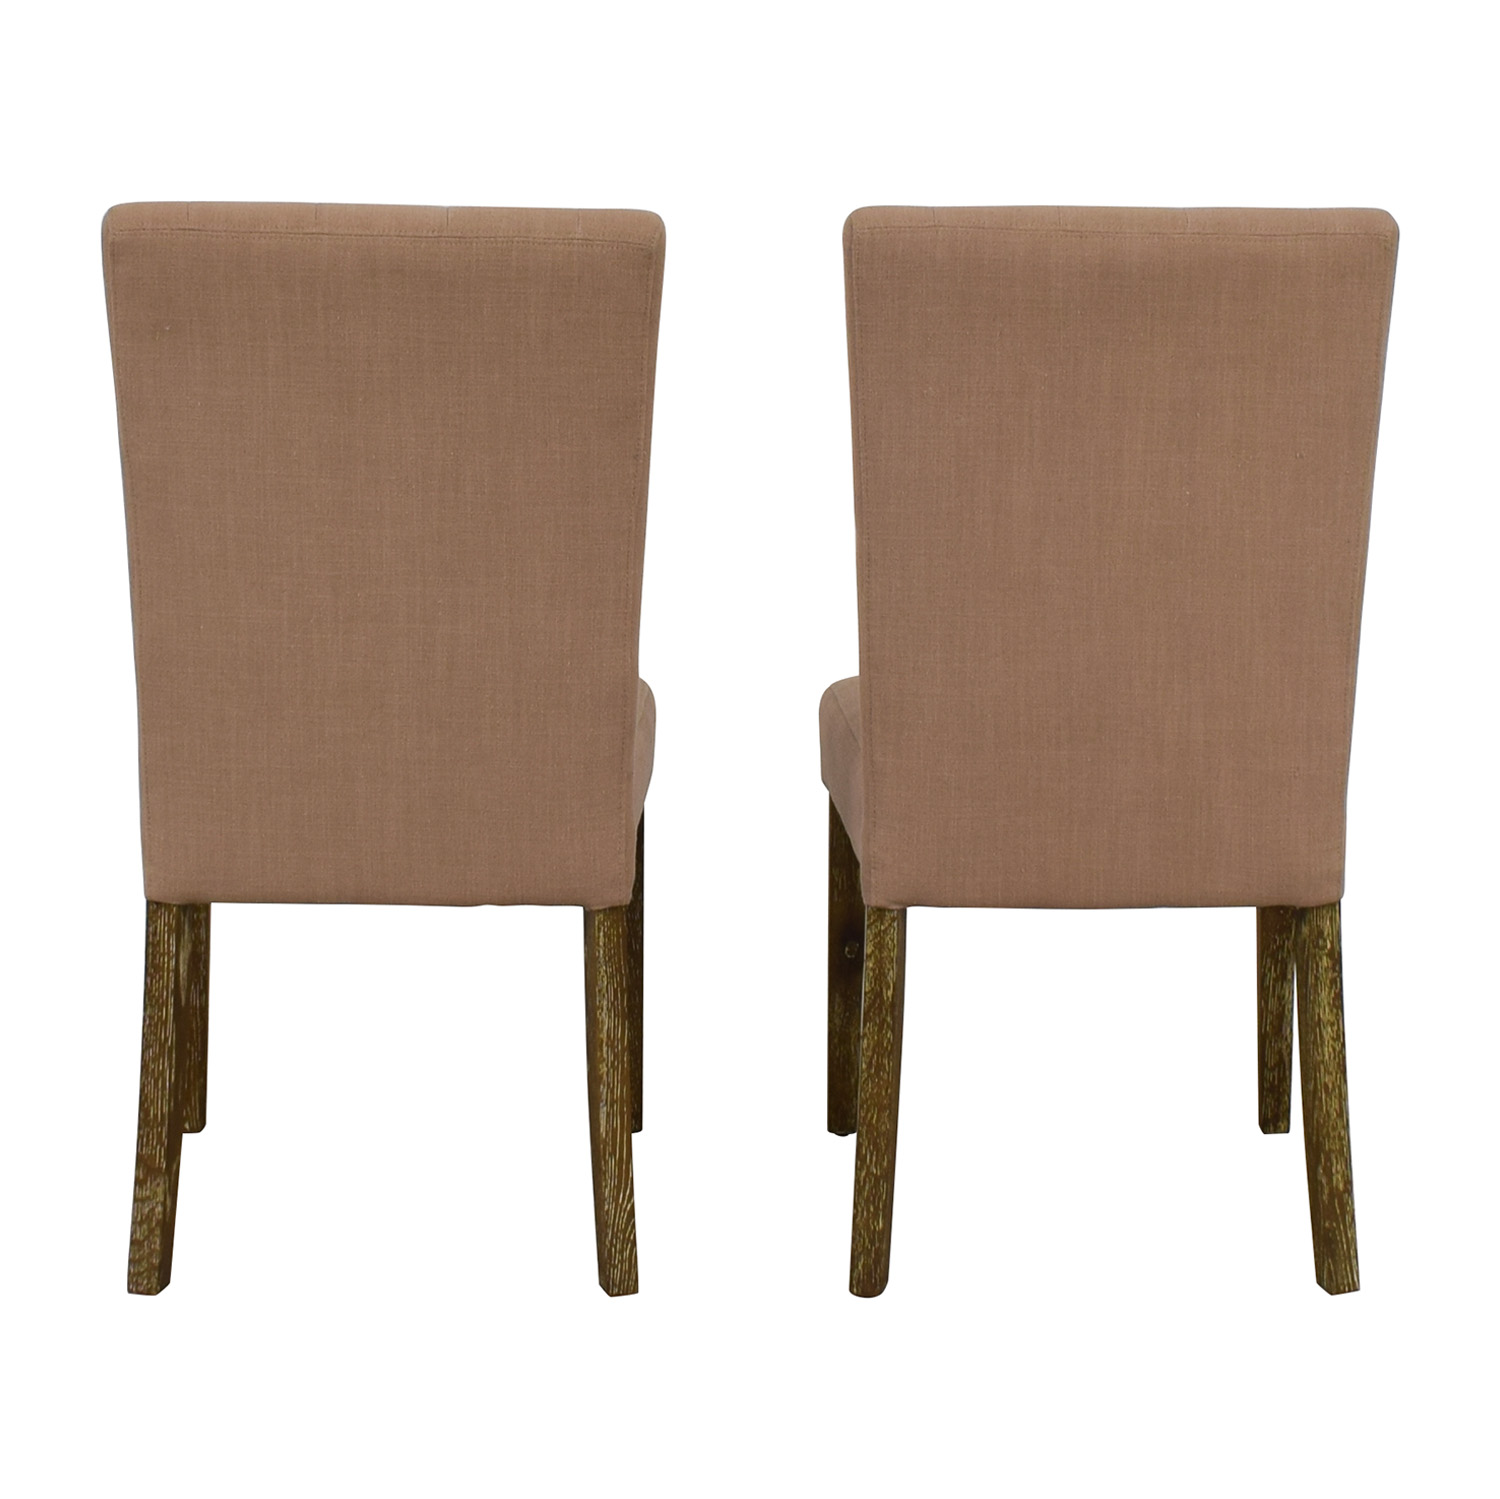 Classic Concepts Classic Concepts Tufted Beige Linen Dining Chairs for sale